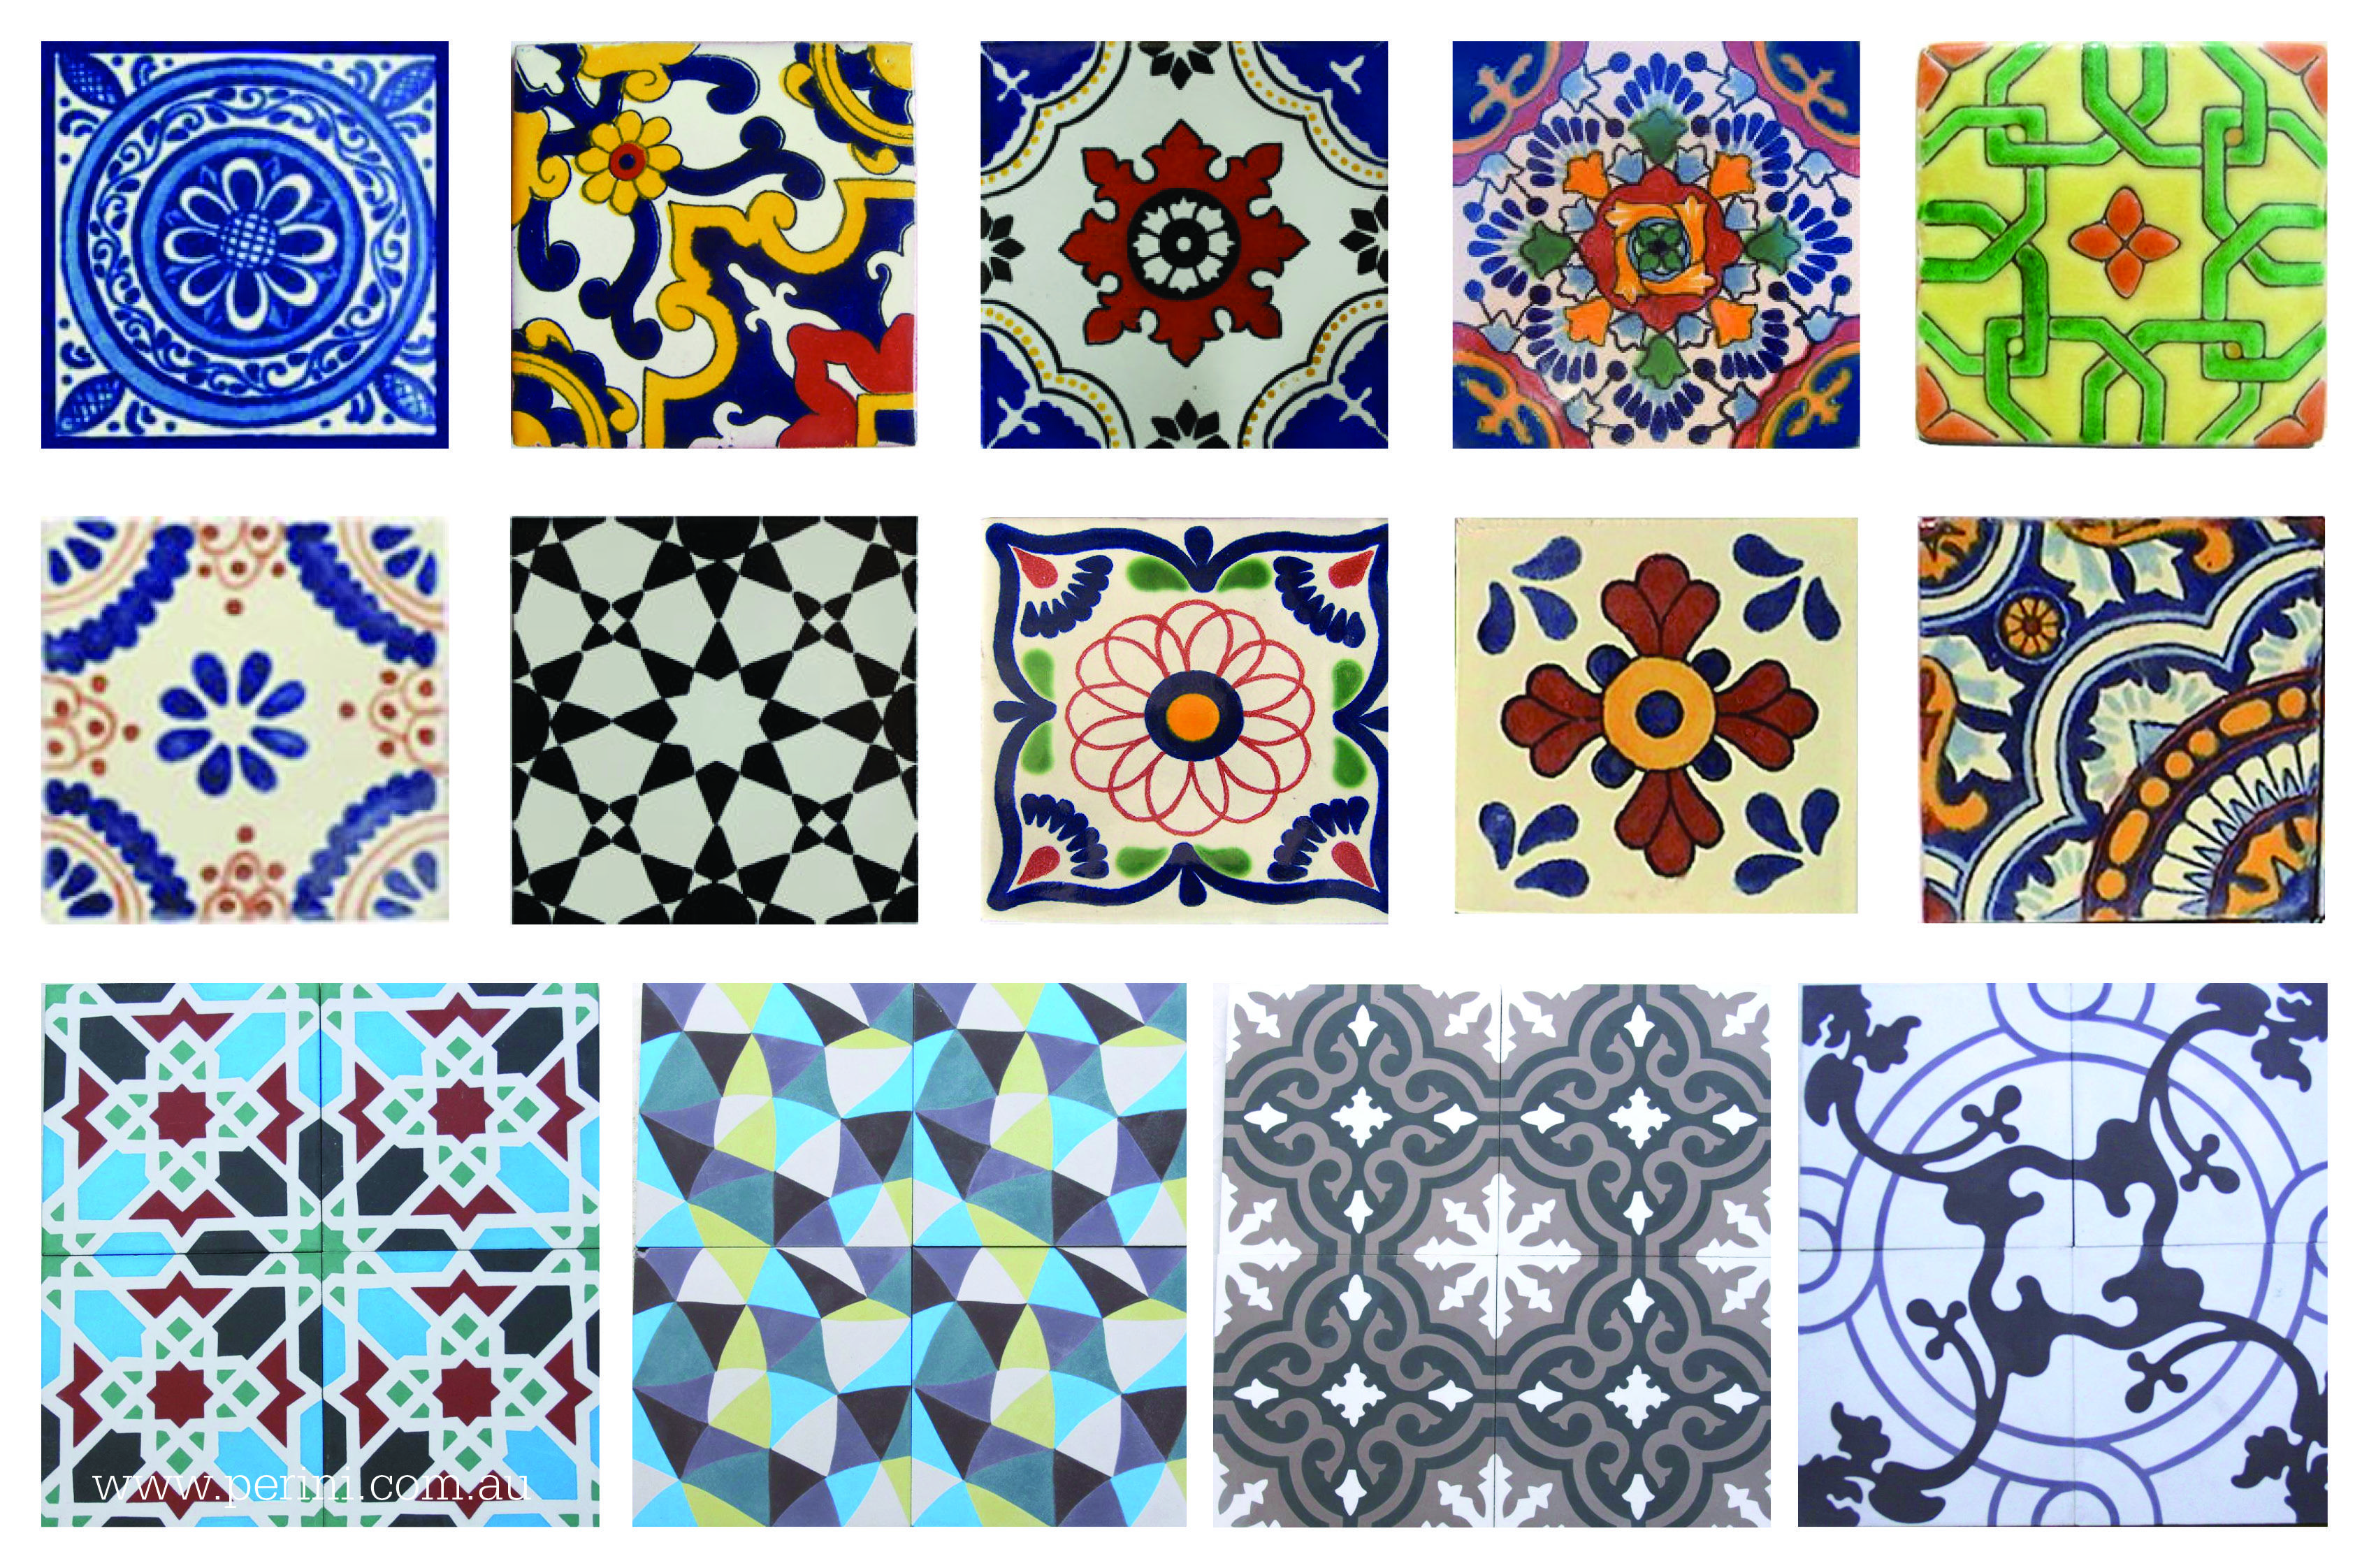 Decorative Tiles Melbourne Perini Tiles New Moroccan Tiles  Decorative Tiles  Pinterest